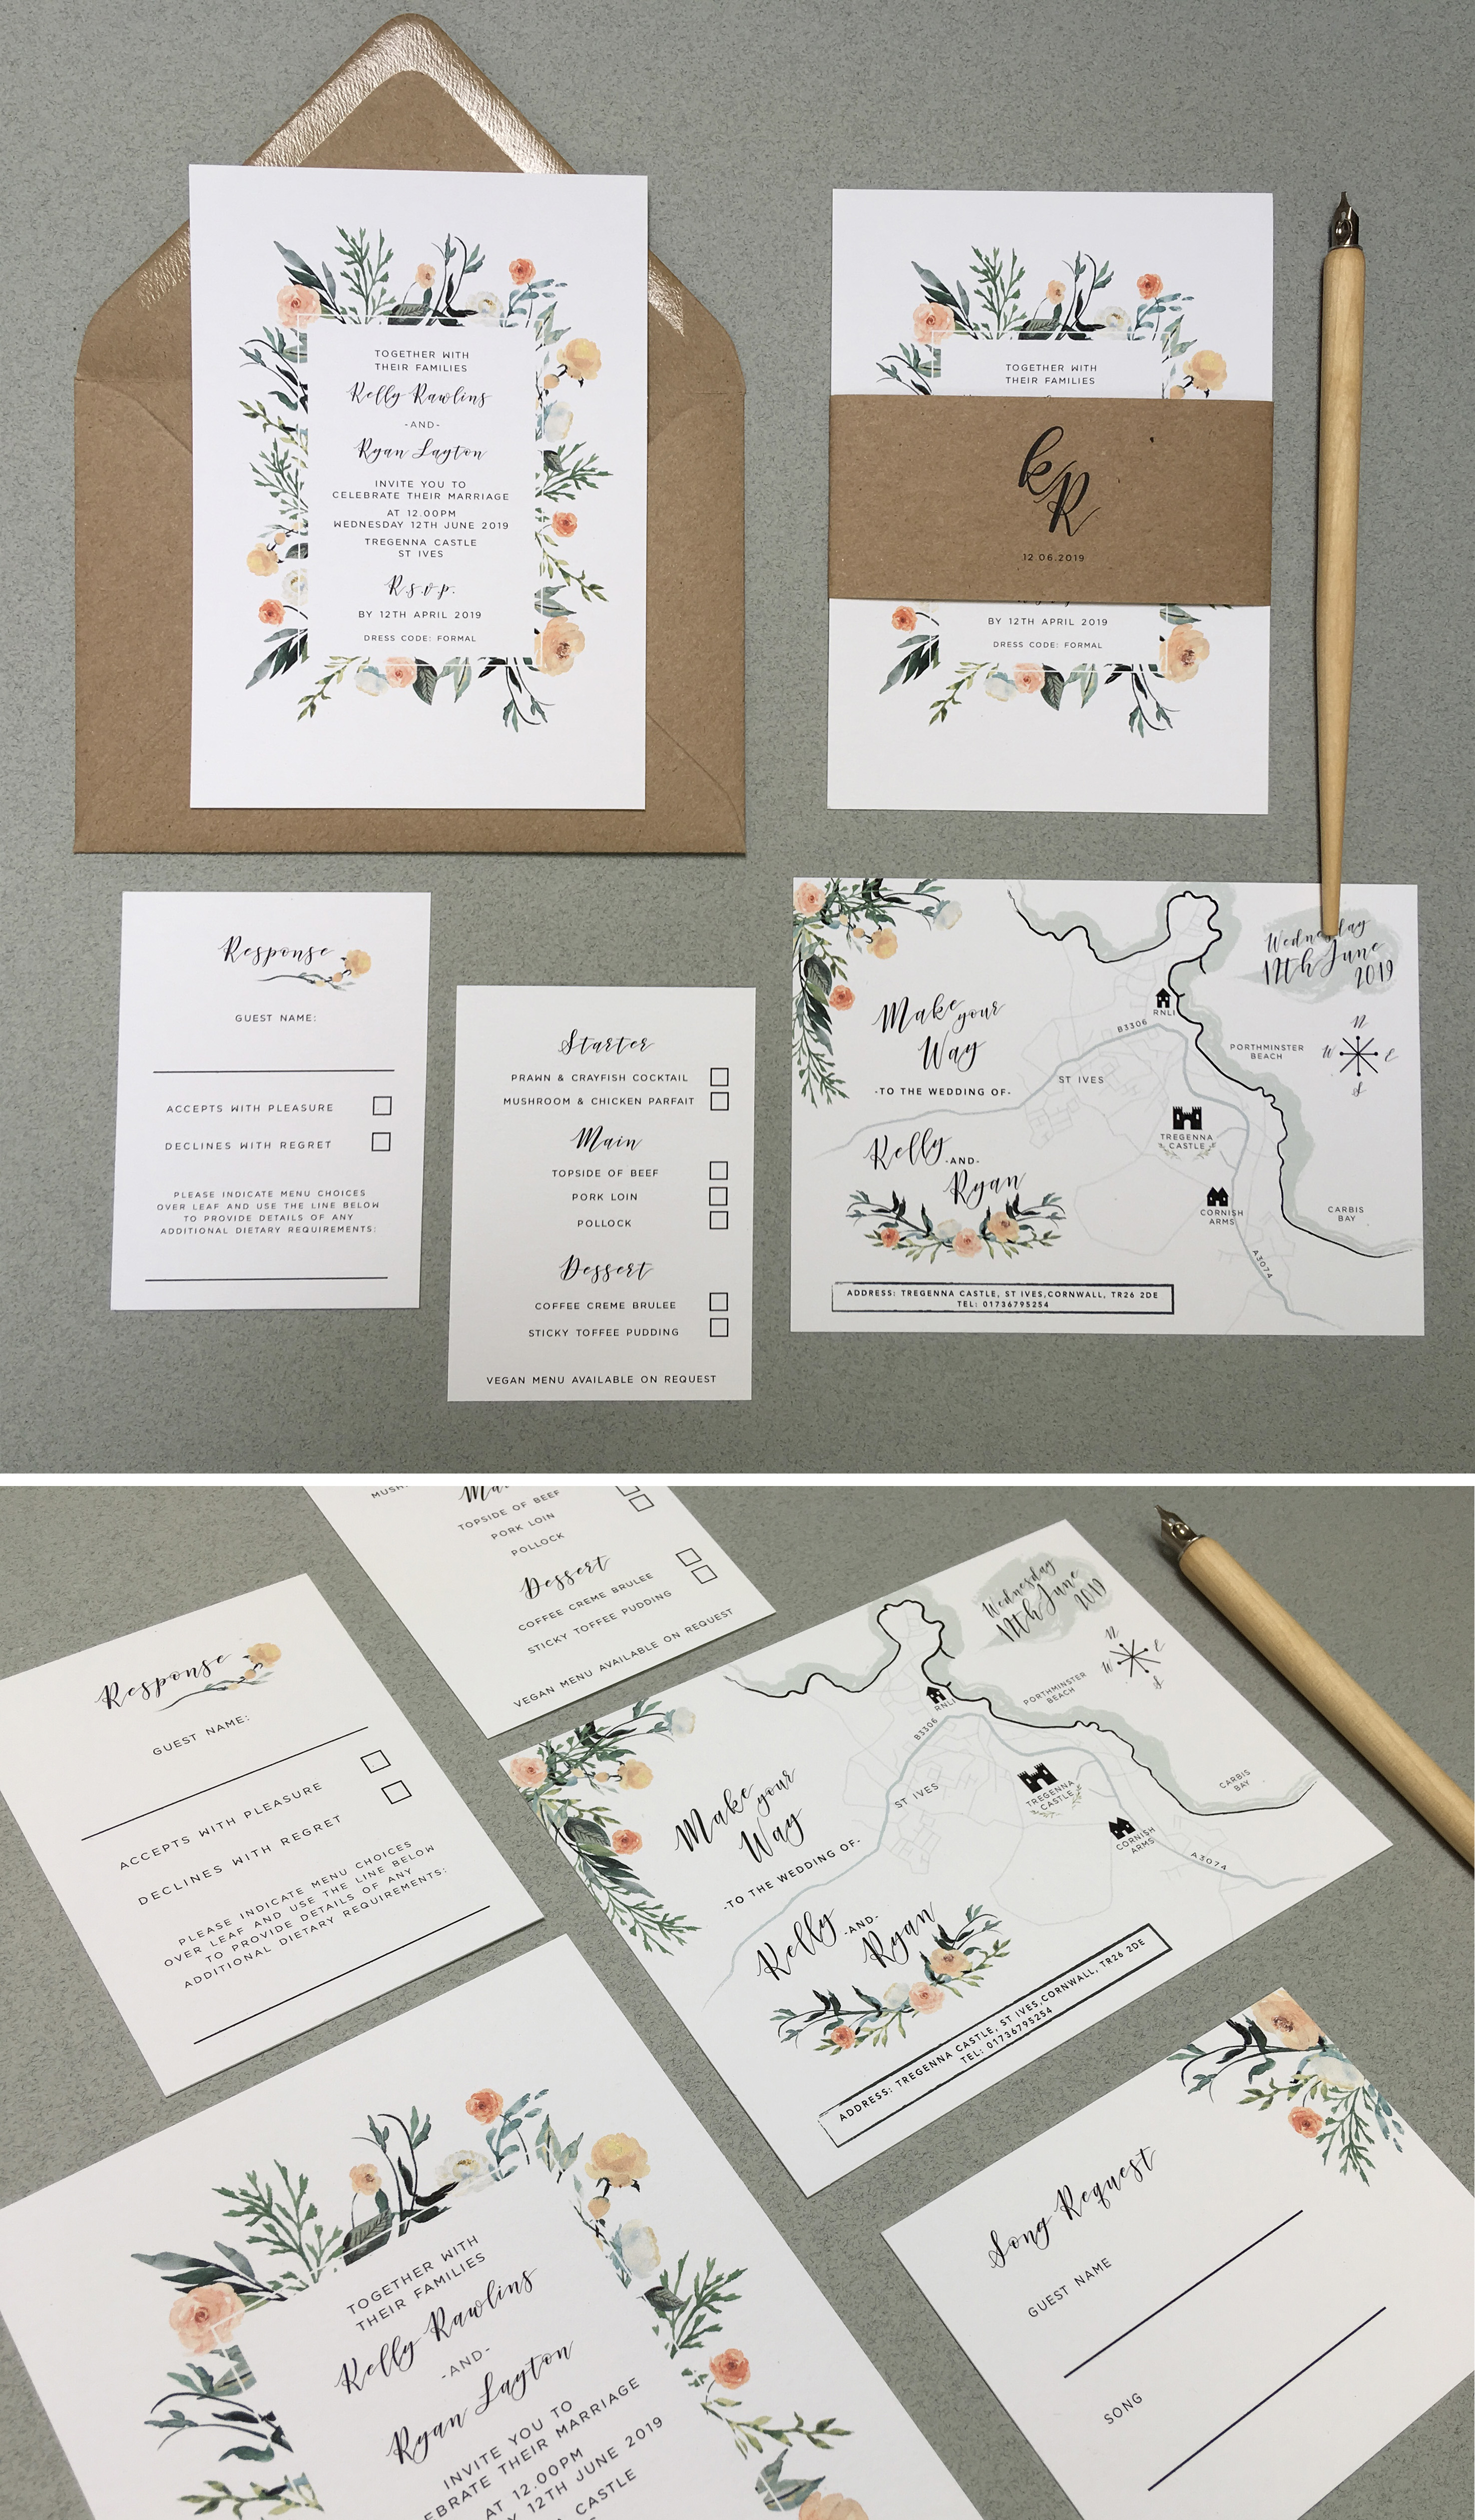 wedding, stationery, stationary, invites, invitations, floral, flowers, sepia, creams, washed out, faded, grandeur, neutral, subtle, botanical, foliage, water colour, watercolour, illustrated, eco, natural, recycled, cornwall, Laura likes